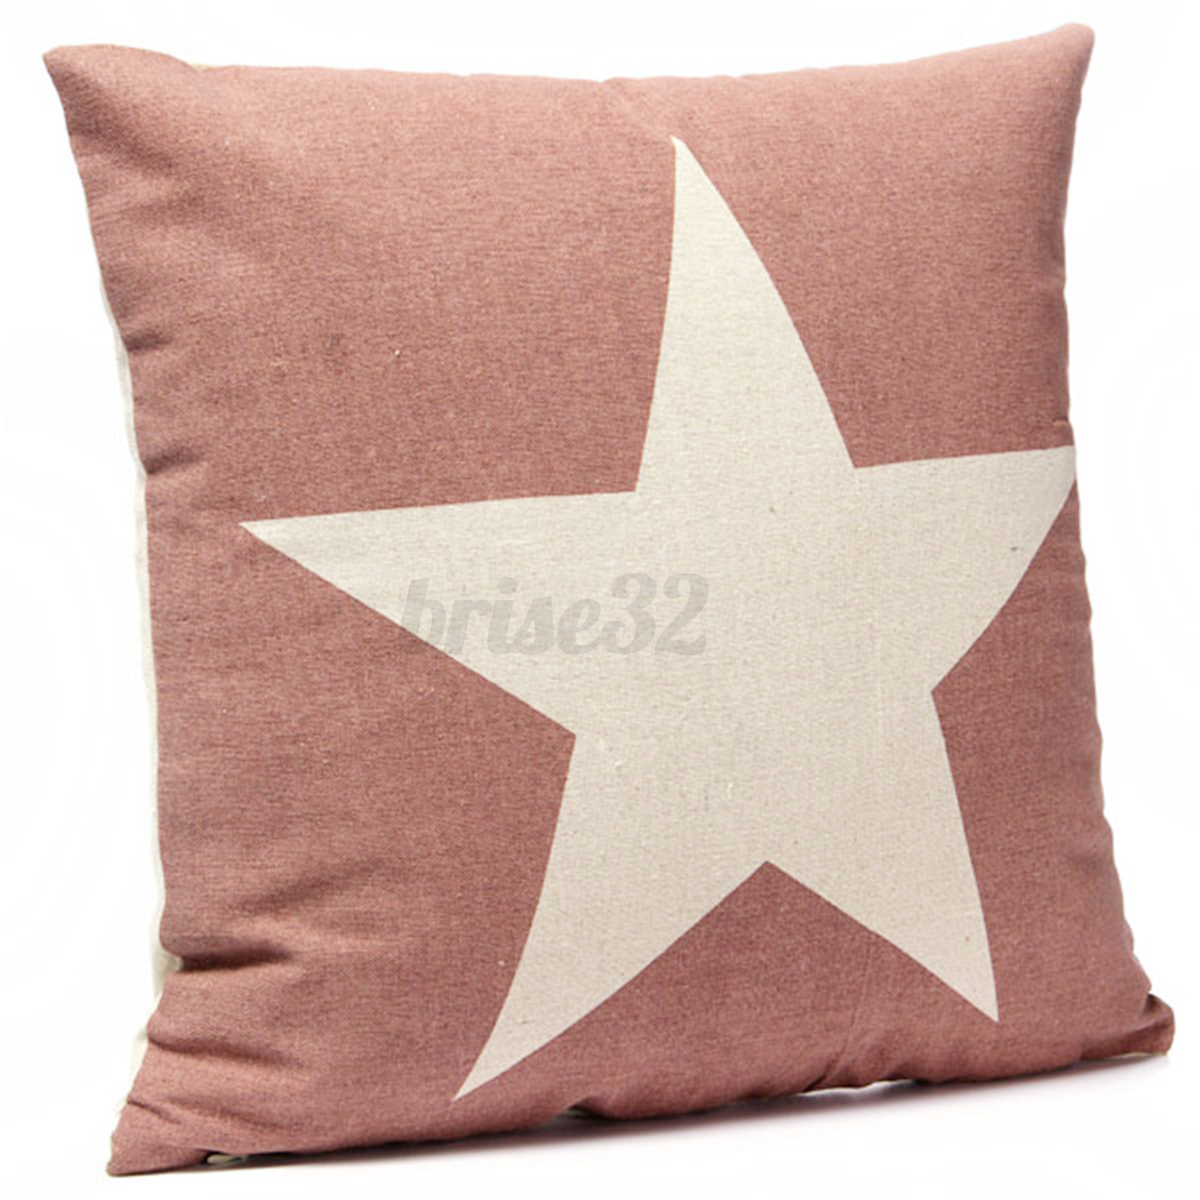 Throw Pillows With Stars : Cotten Linen Star Throw Pillow Case Cushion Cover Square Home Bed Sofa Car Decor eBay